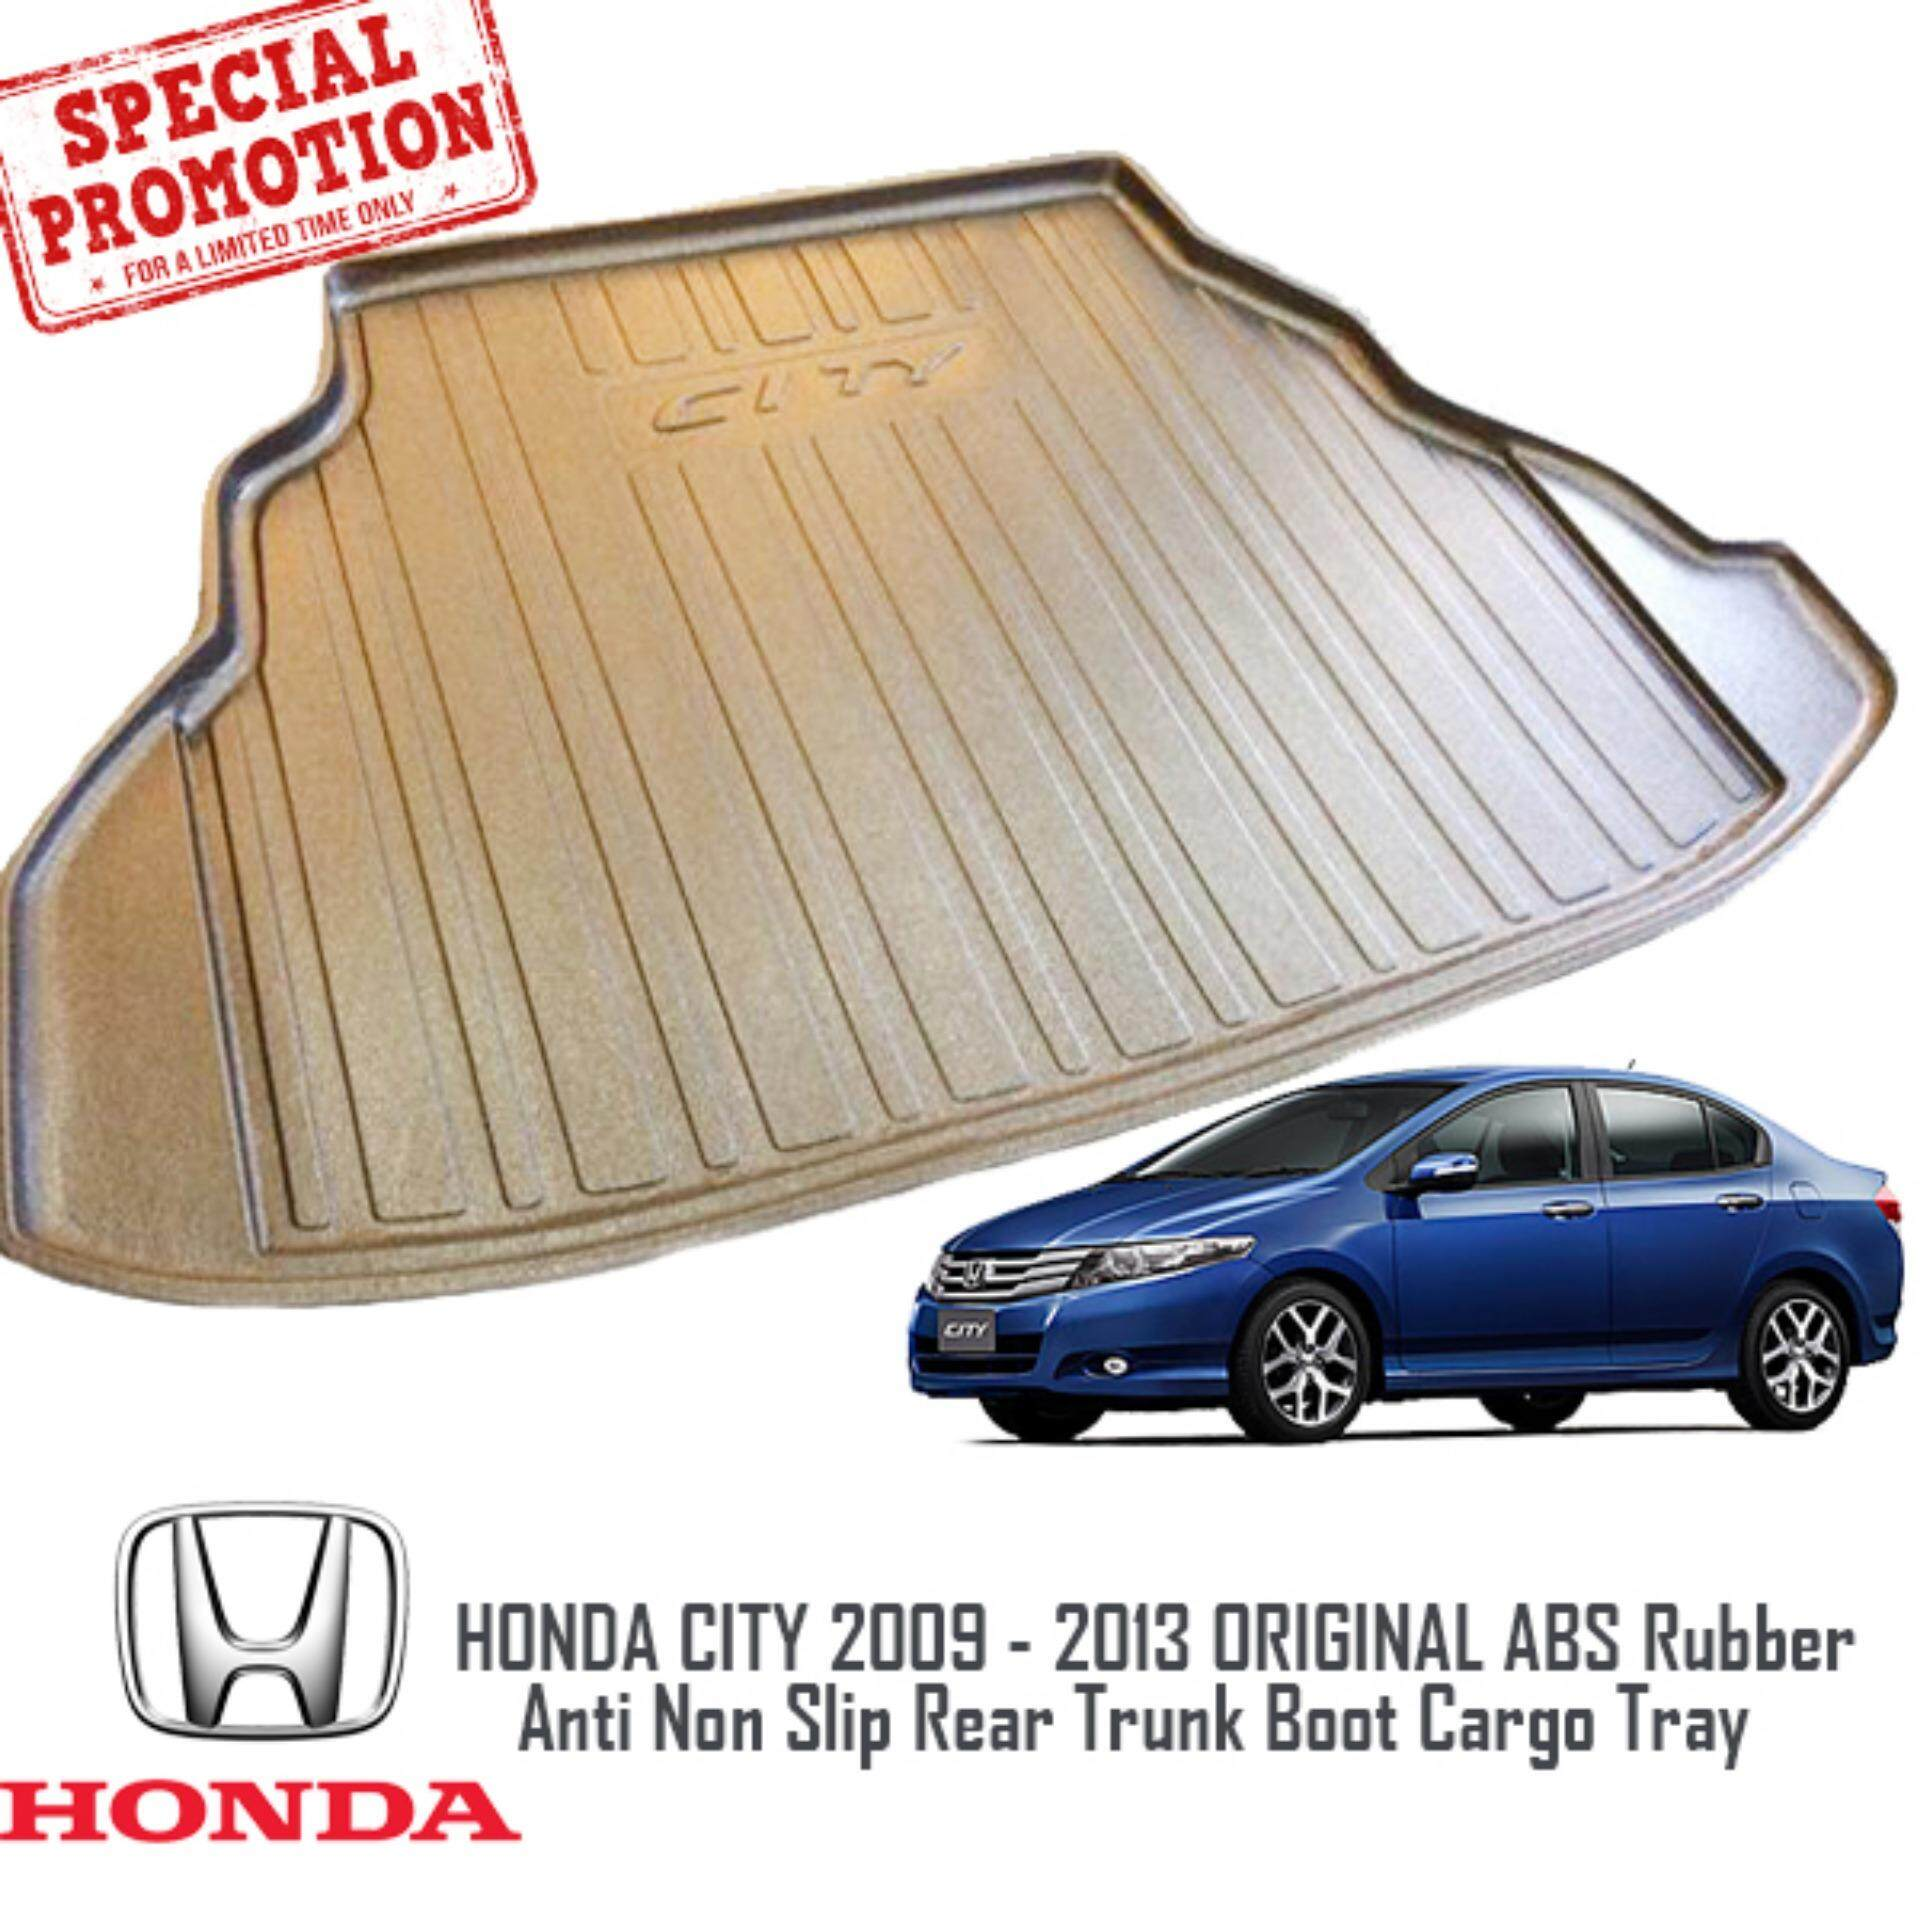 HONDA CITY 2009 - 2013 ORIGINAL ABS Non Slip Rear Trunk Boot Cargo Tray